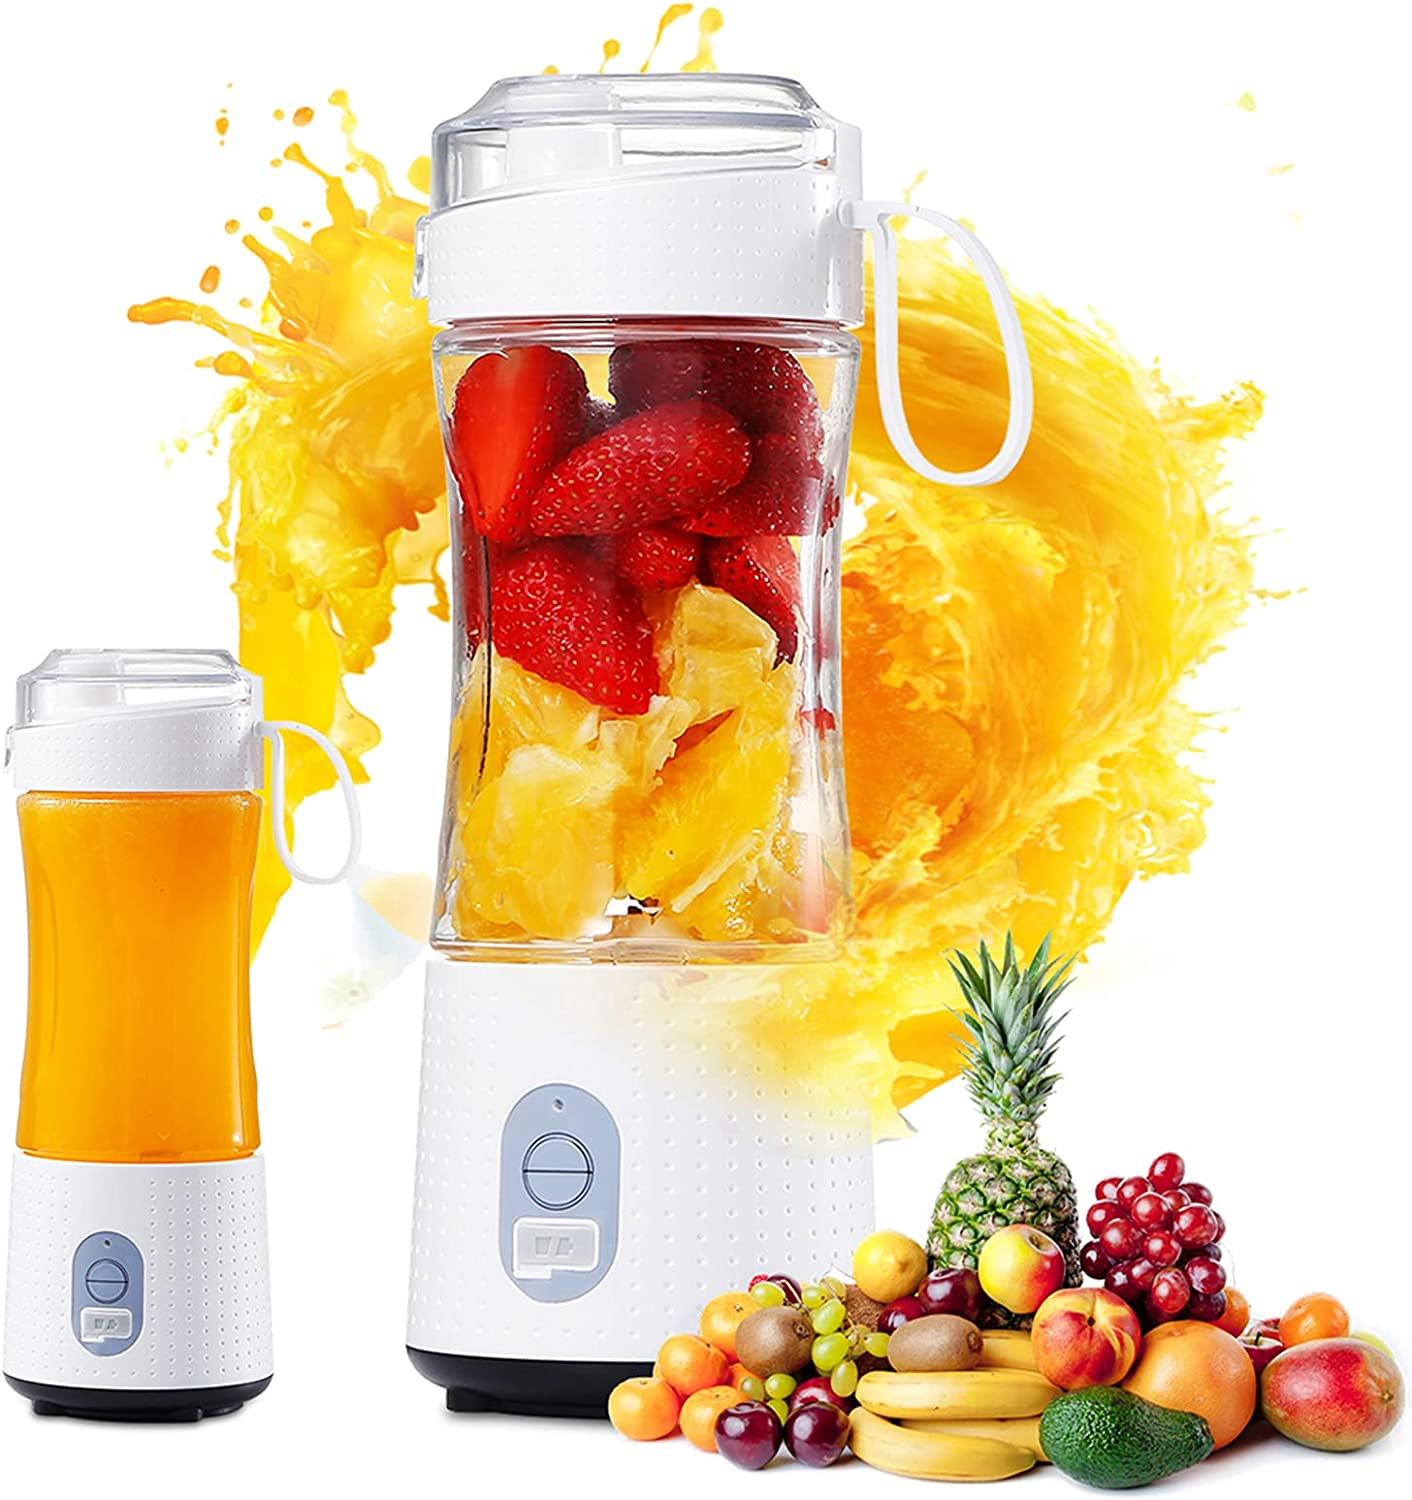 Portable Mini Shakes Smoothies Blender: Personal Size Blender with USB Rechargeable - Single serve Small Fruit Juice Milk Mixer Mini Juicer Cup Maker for Sports Home Travel Office